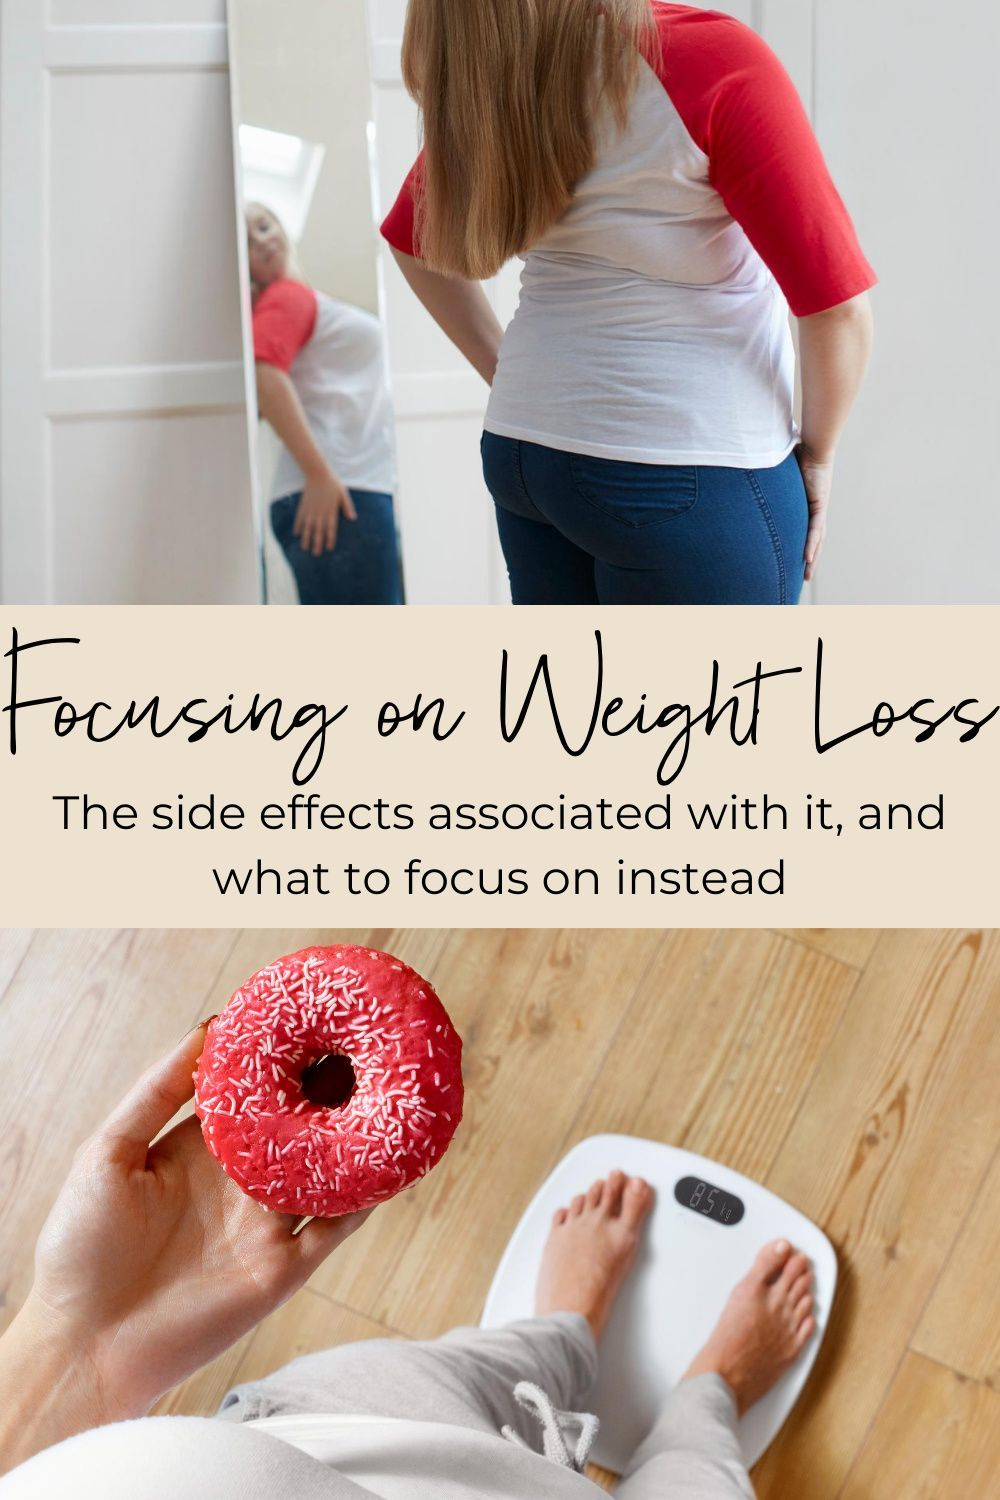 Did you know the vast majority of those who intentionally lose weight gain it all back? And many gain back more weight than they lost. In fact, dieting is associated with weight gain over time. So if you're not following food rules and you're not focusing on your weight… what in the world do you focus on? #weightloss #antdiet #nondiet #rd #dietetics #antidietdietitian #bodyacceptance #selfcare #mindfulness #weightcycling